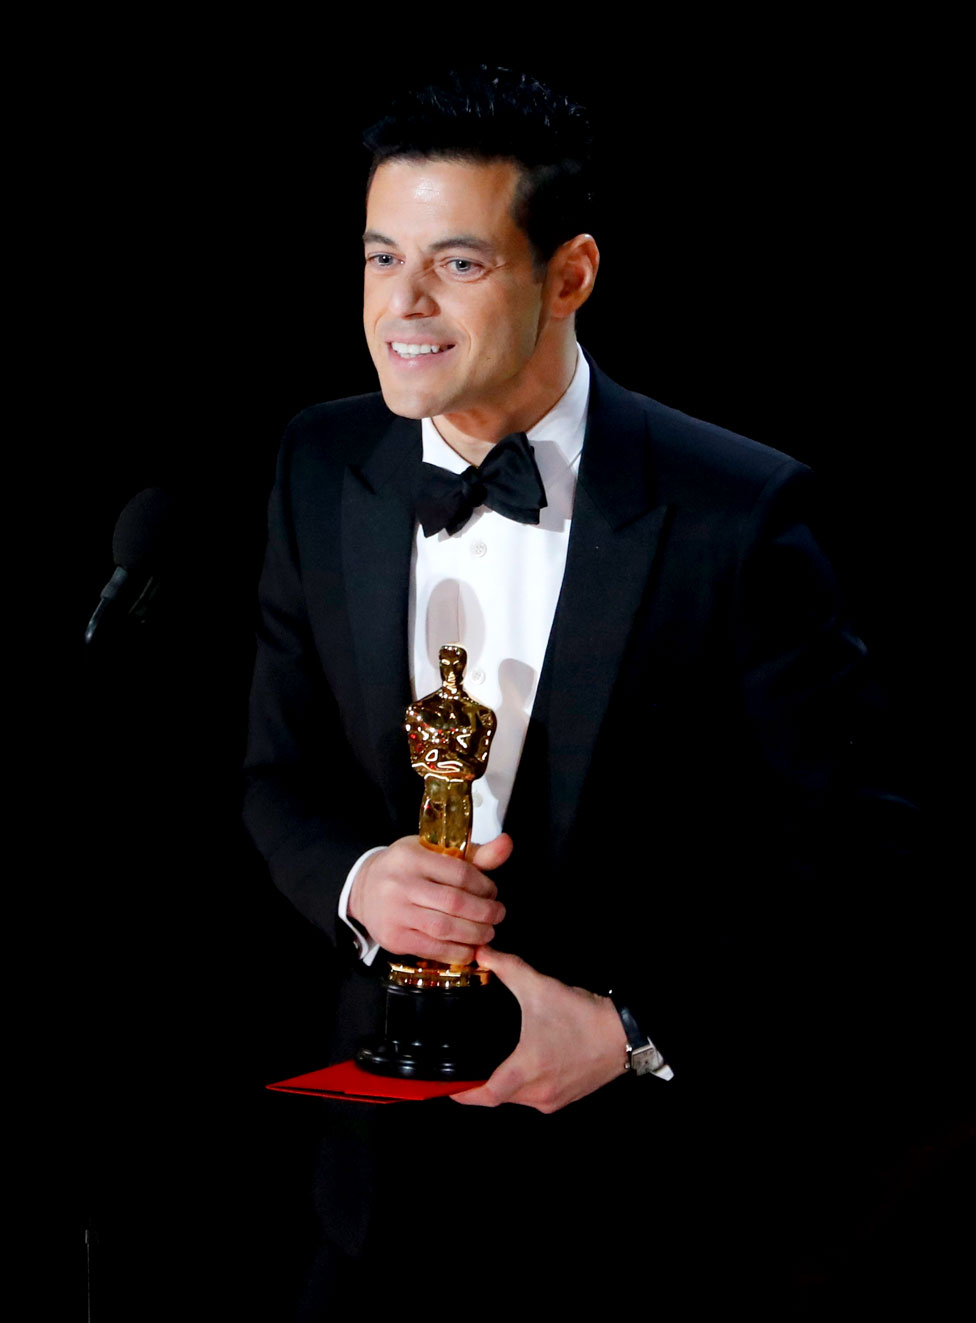 Rami Malek accepts the Best Actor award